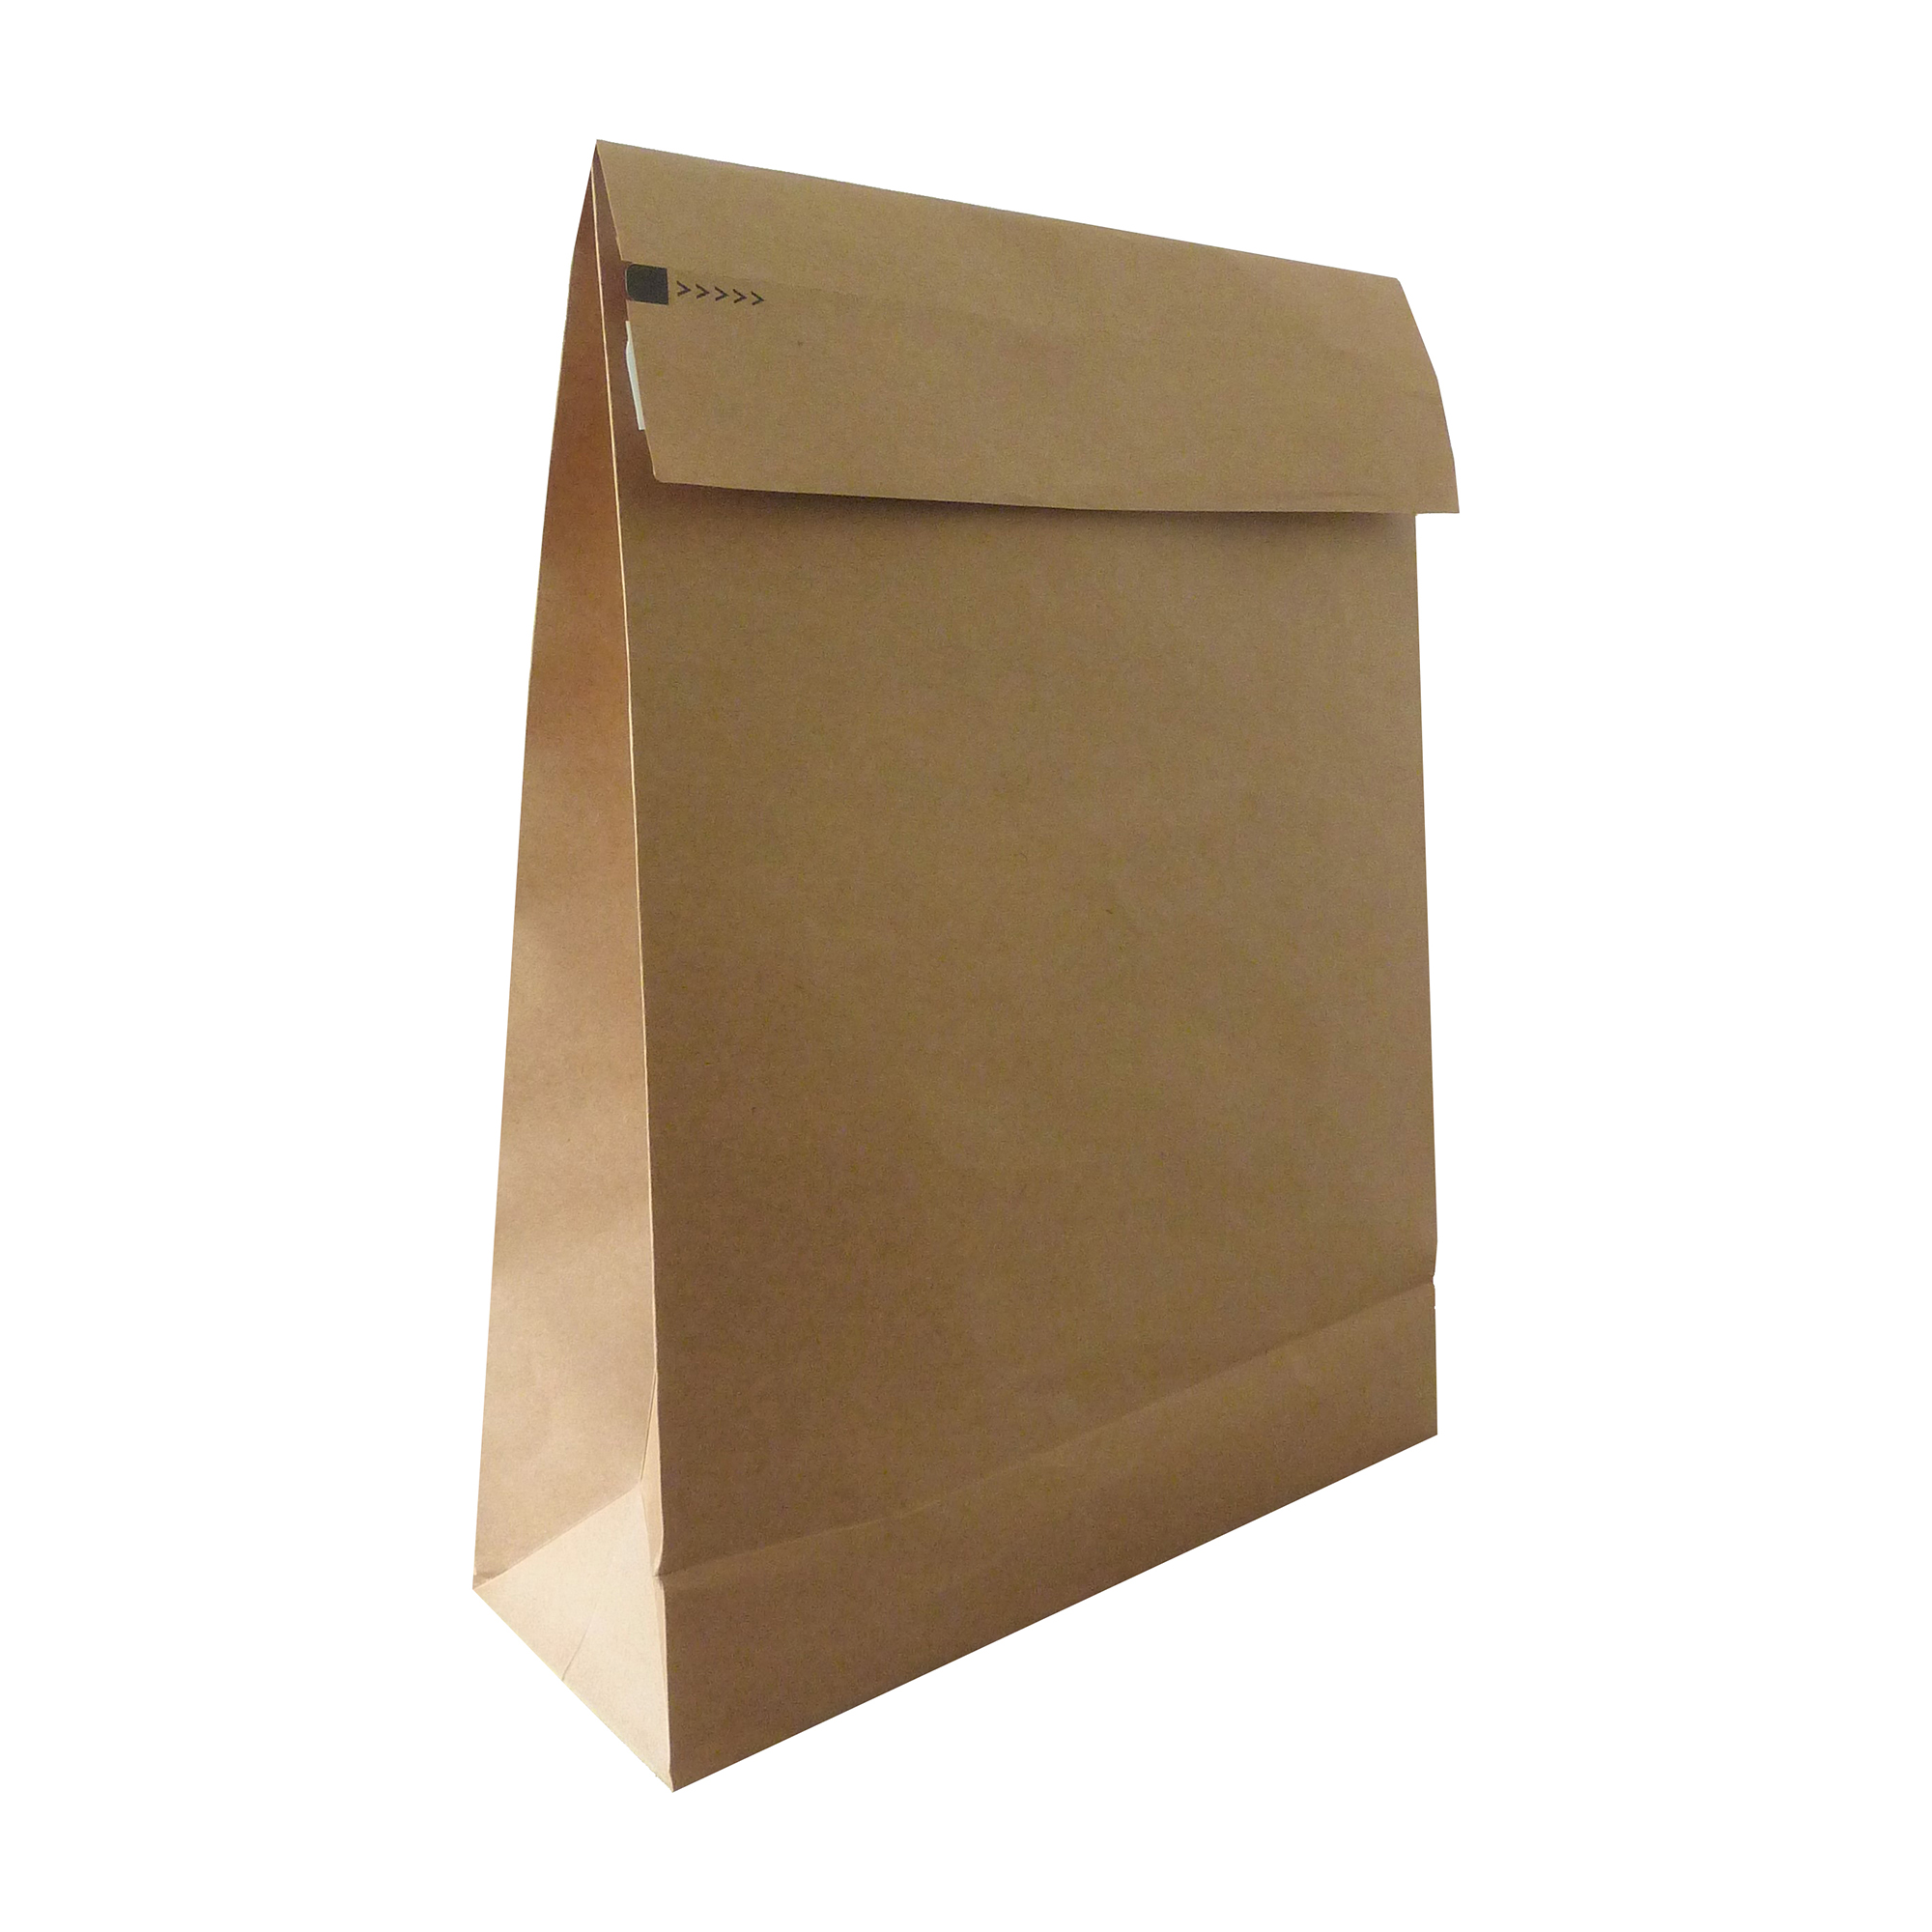 Standard envelopes Kraft Mlr Eco Expanding Block Btm & Side Gusset Dbl P&S 350x450x80mm+100 flap Man Ref RBL10529 Pack 50